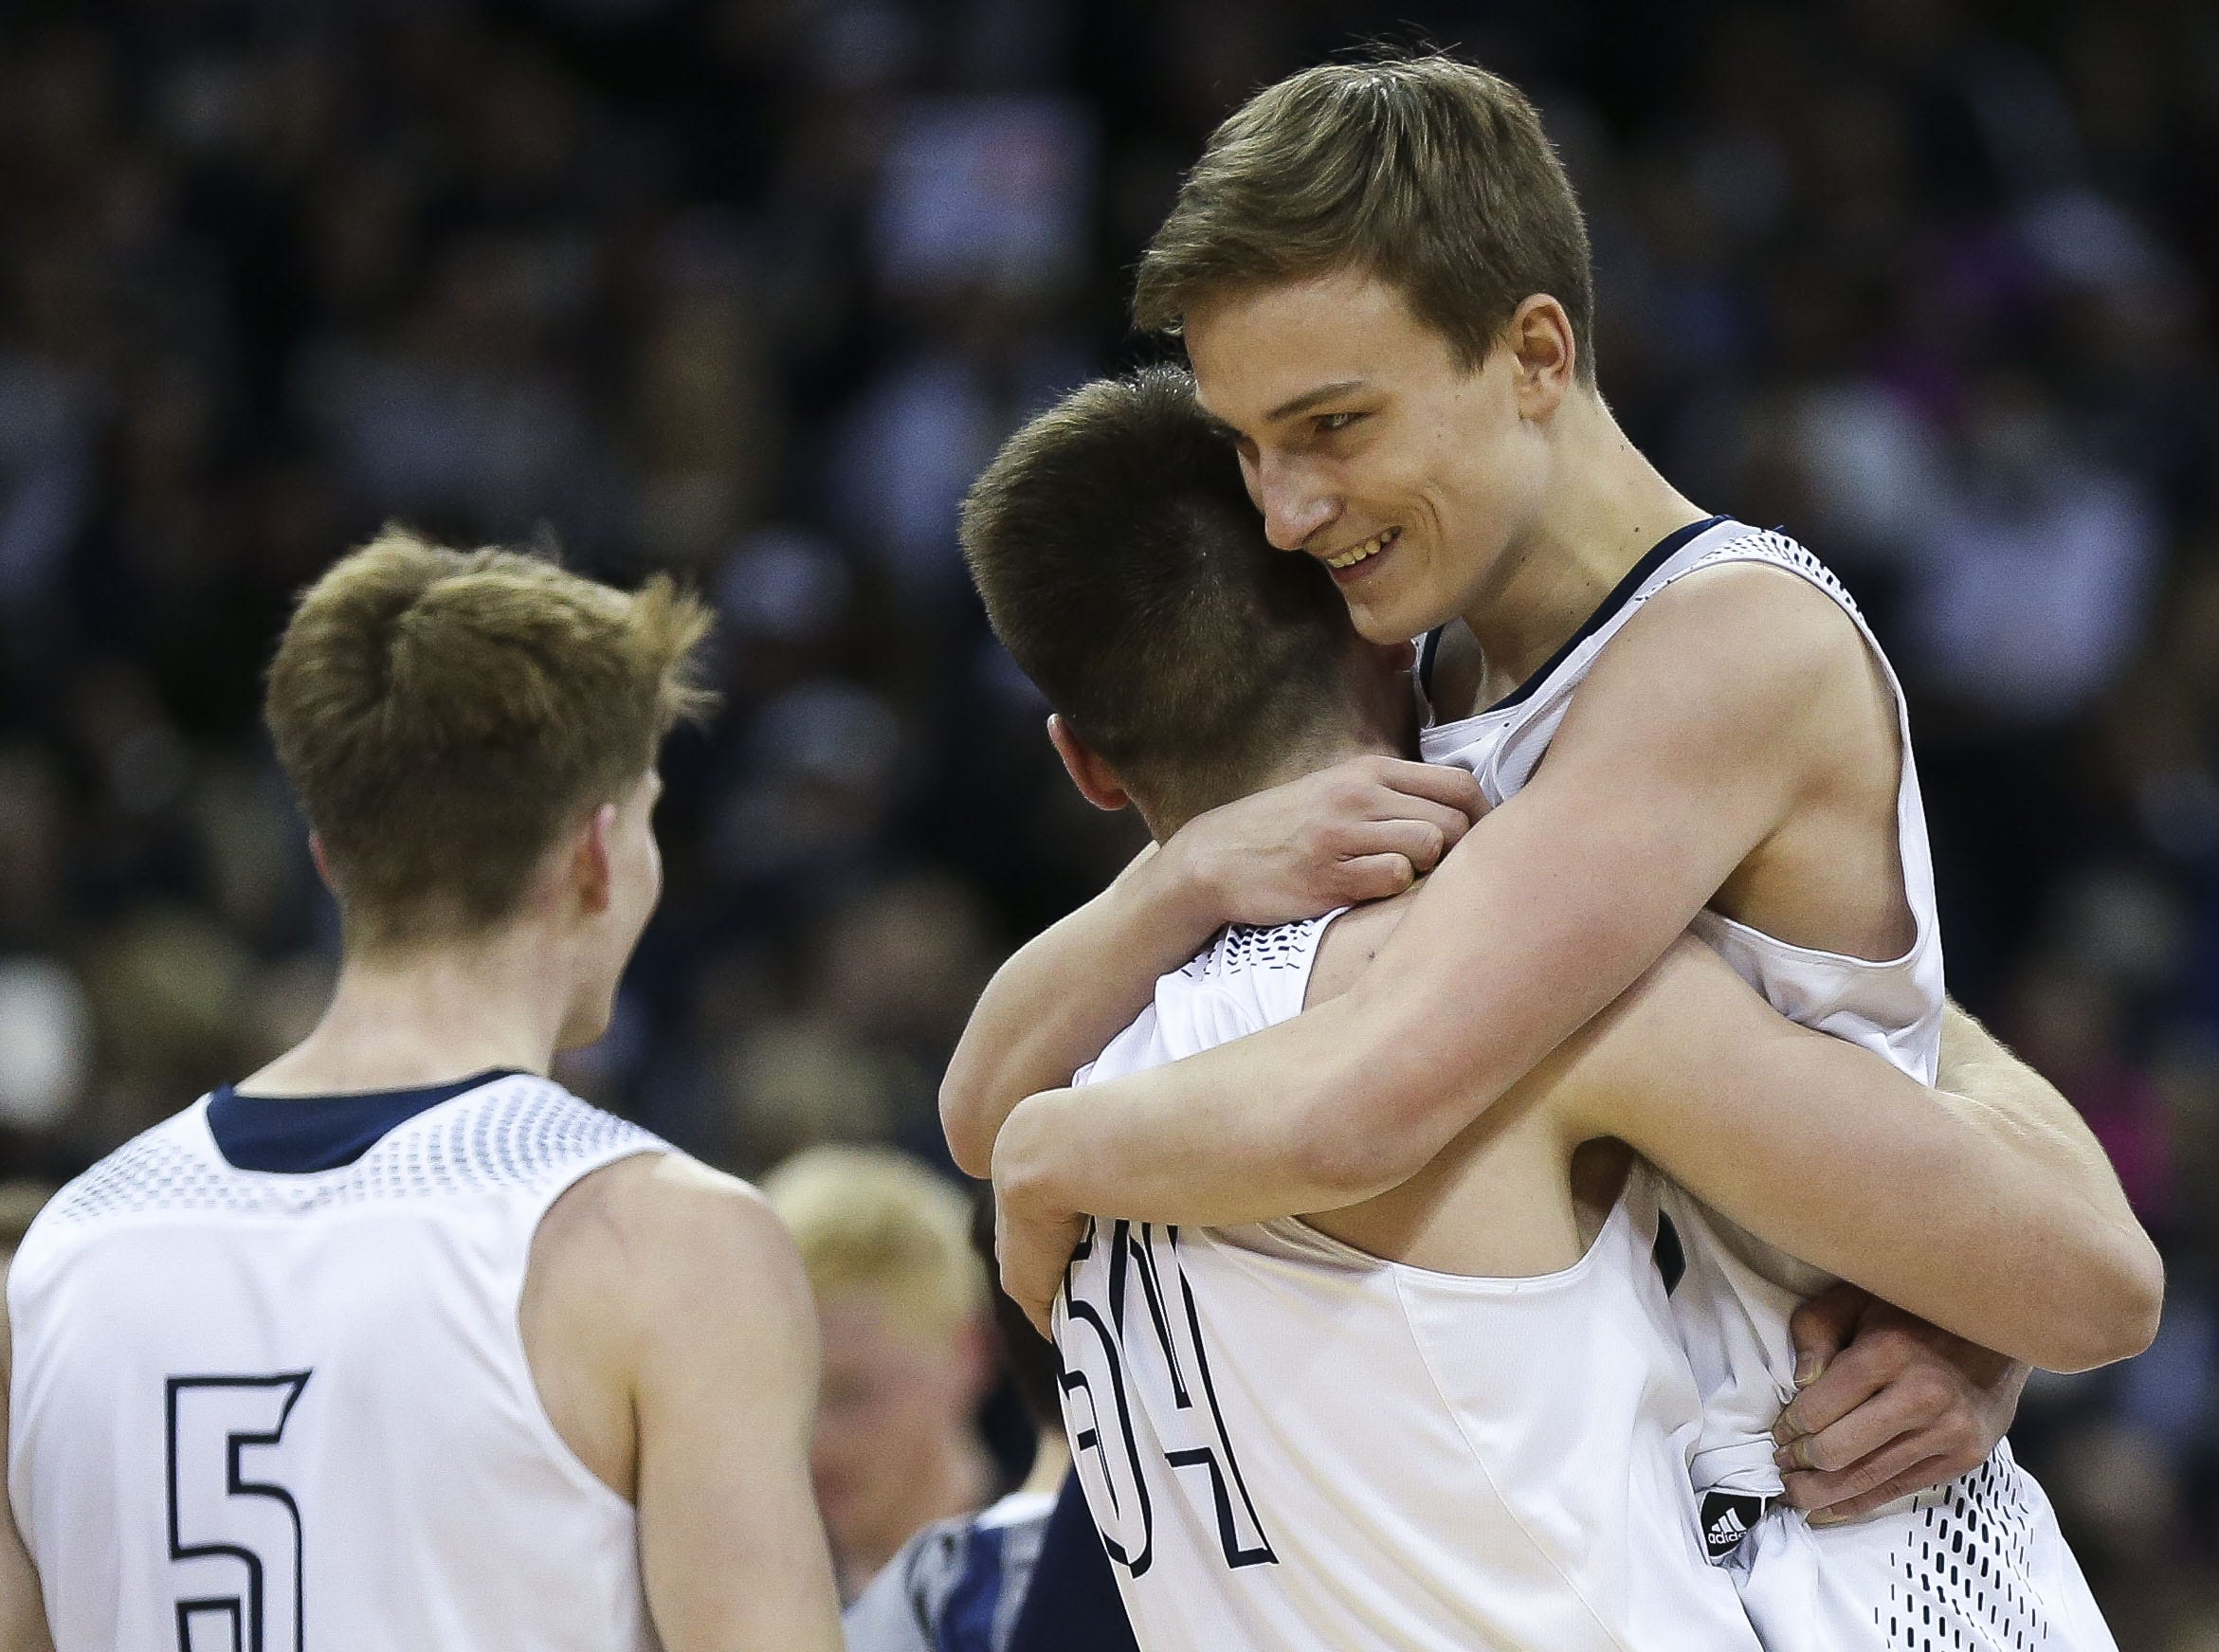 Columbus Catholic High School's Jarred Mandel (54) lifts up Tom Nystrom (right) on the court after a Division 5 boys basketball state semifinal on Friday, March 15, 2019, at the Kohl Center in Madison, Wis. Nystrom hit a game-winning 3-pointer at the buzzer to give the Dons a 69-66 victory over Bangor High School. Tork Mason/USA TODAY NETWORK-Wisconsin